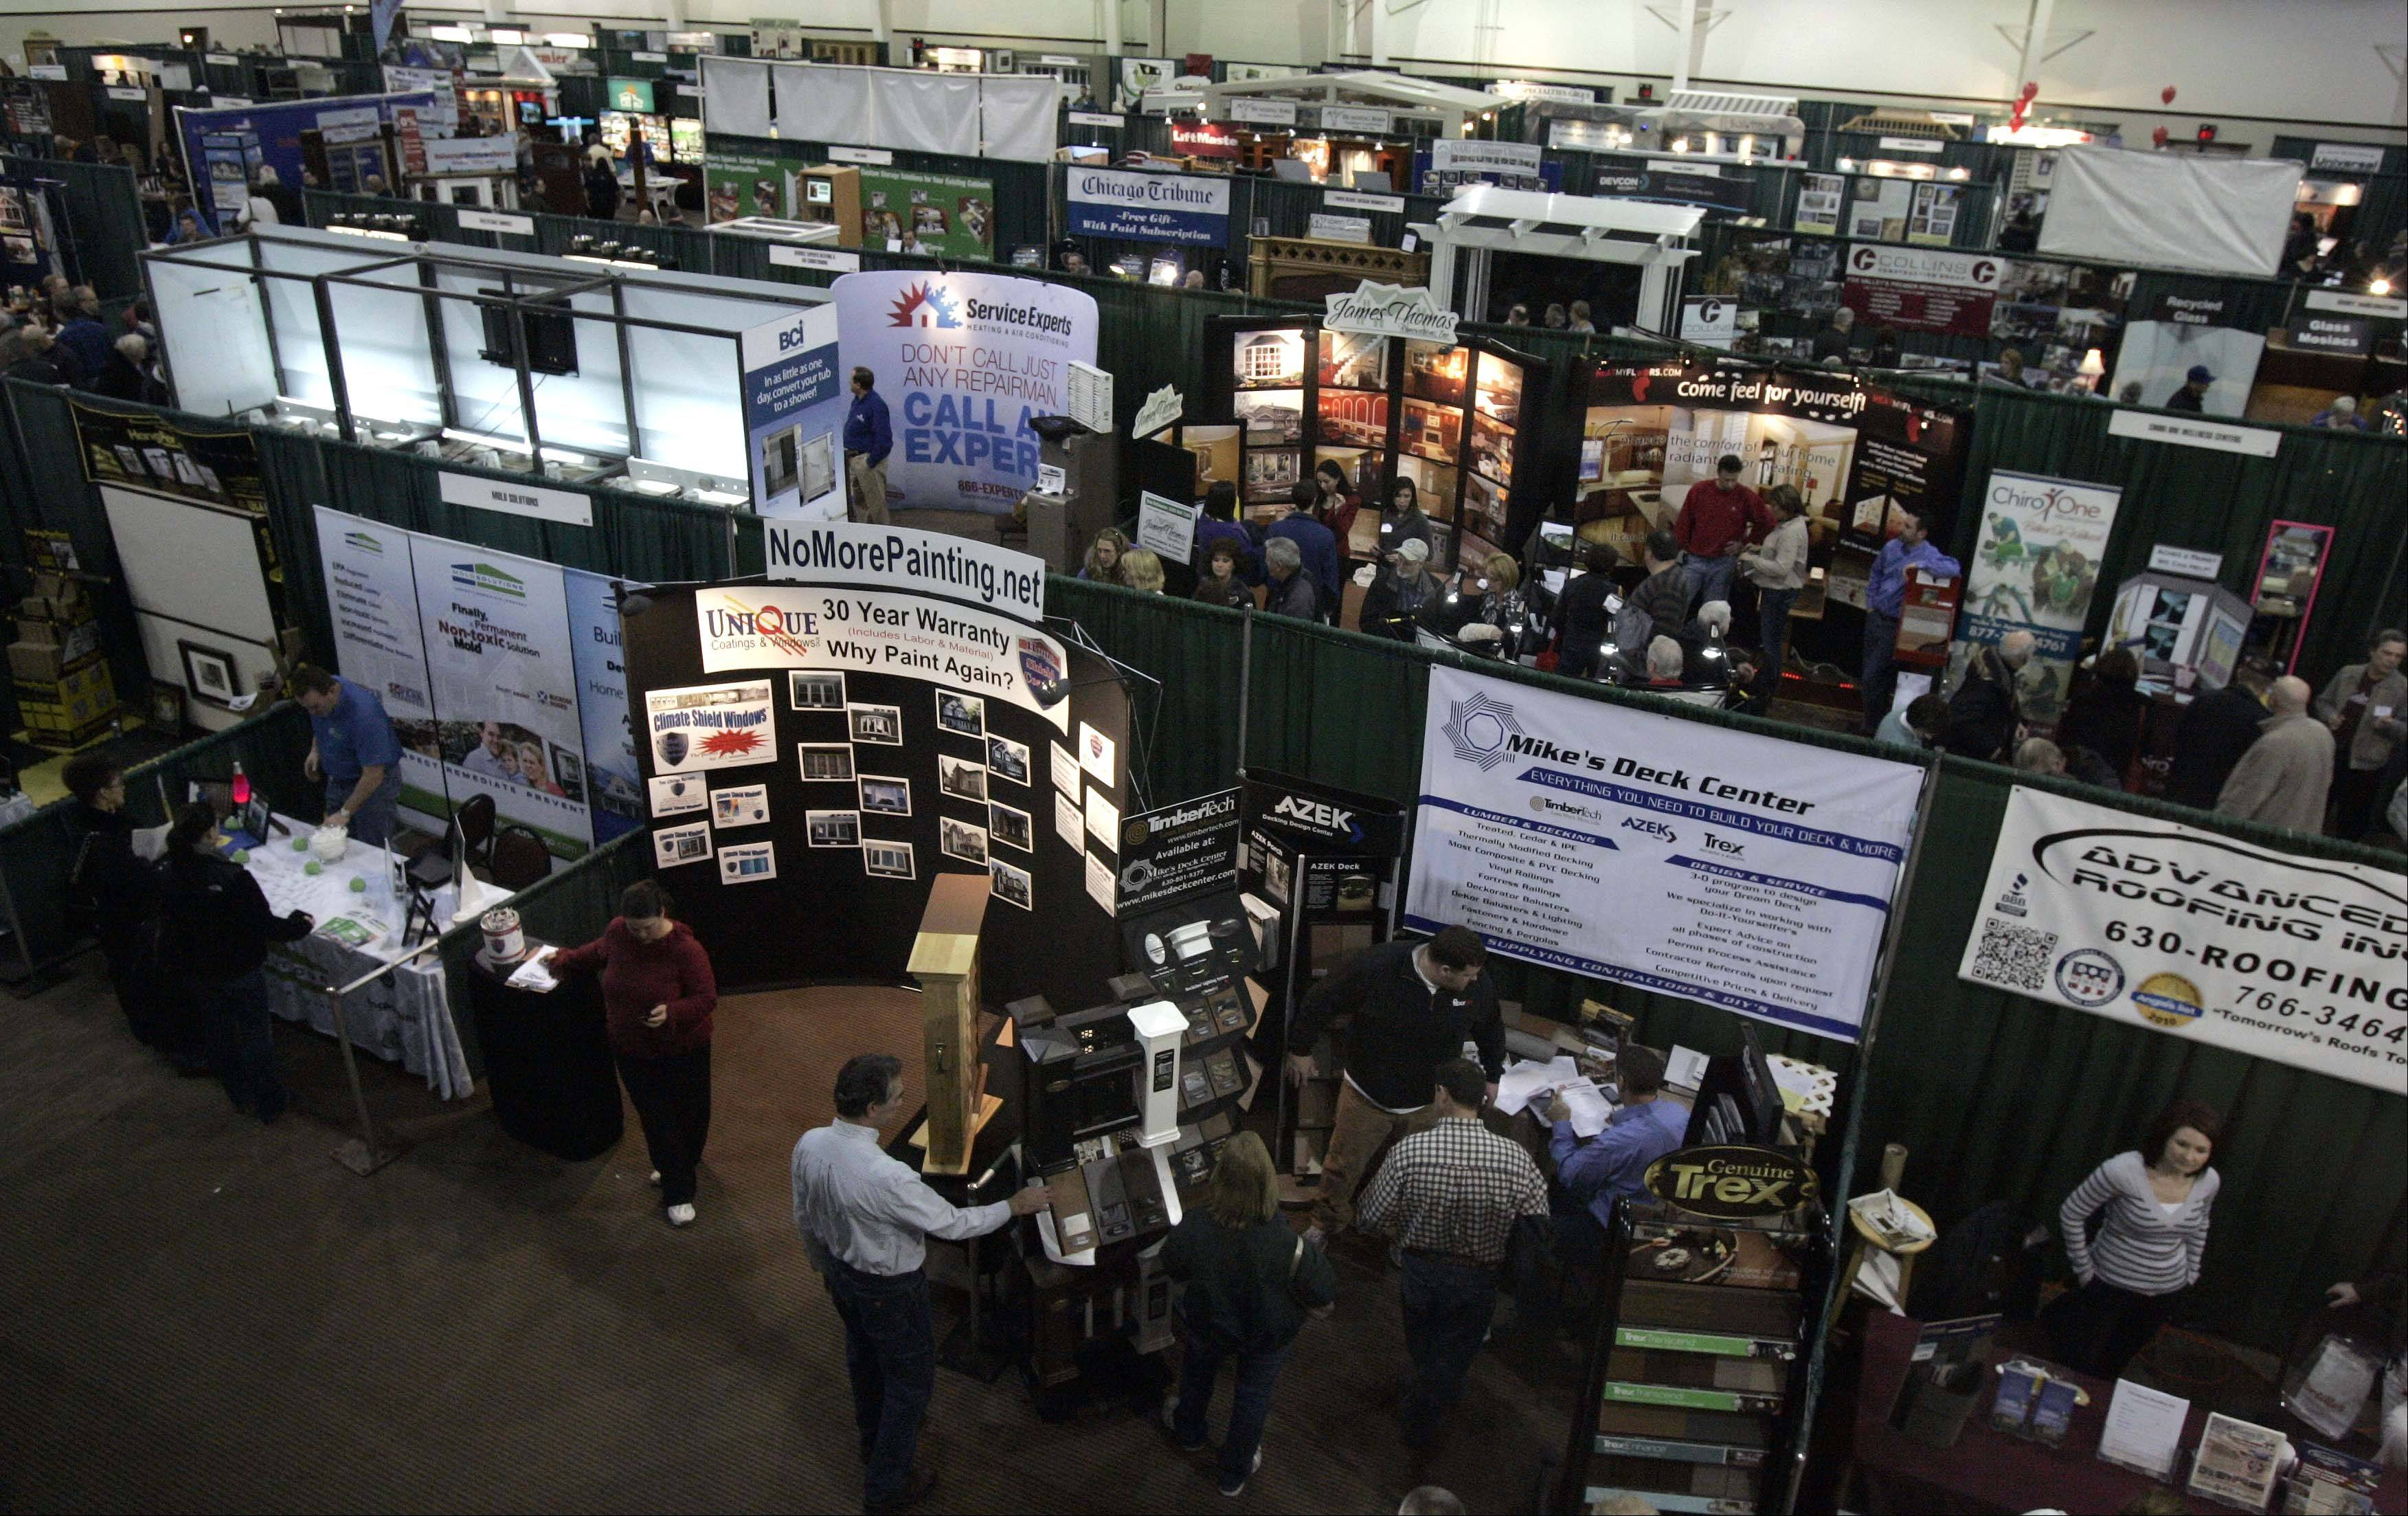 The 27th annual Old House New House Home Show featured more than 250 vendors and 340 booths with everything from carpentry to landscaping.